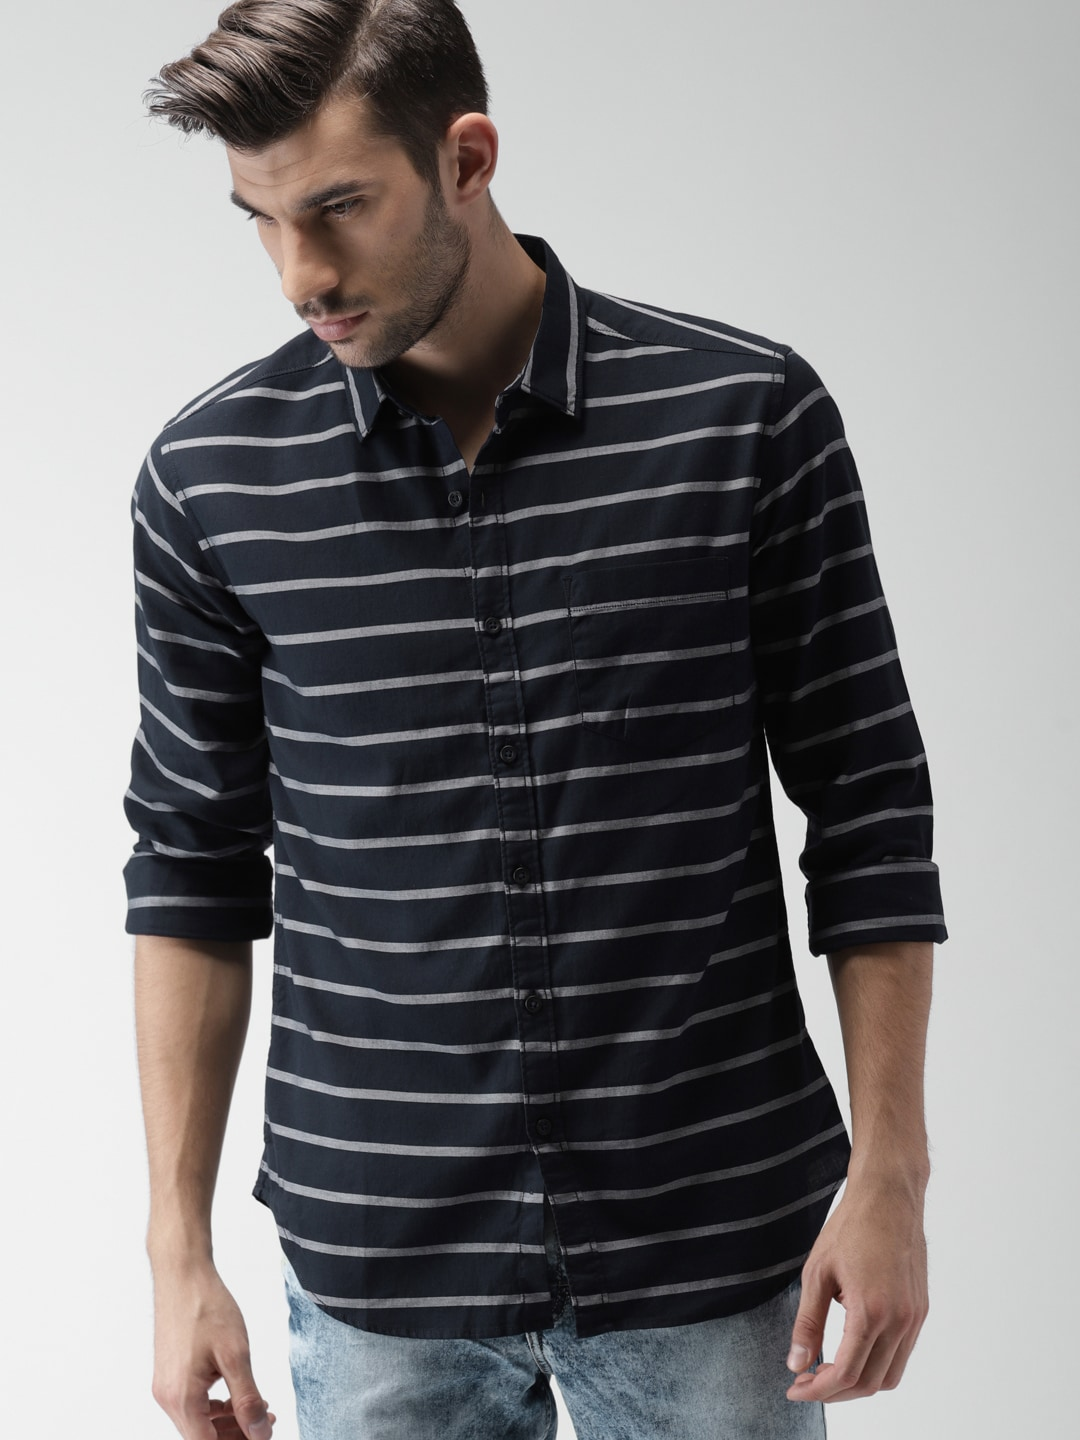 01f98fb80 Flat 60% Sale - Flat 60% Off On Top Brands Online At Myntra